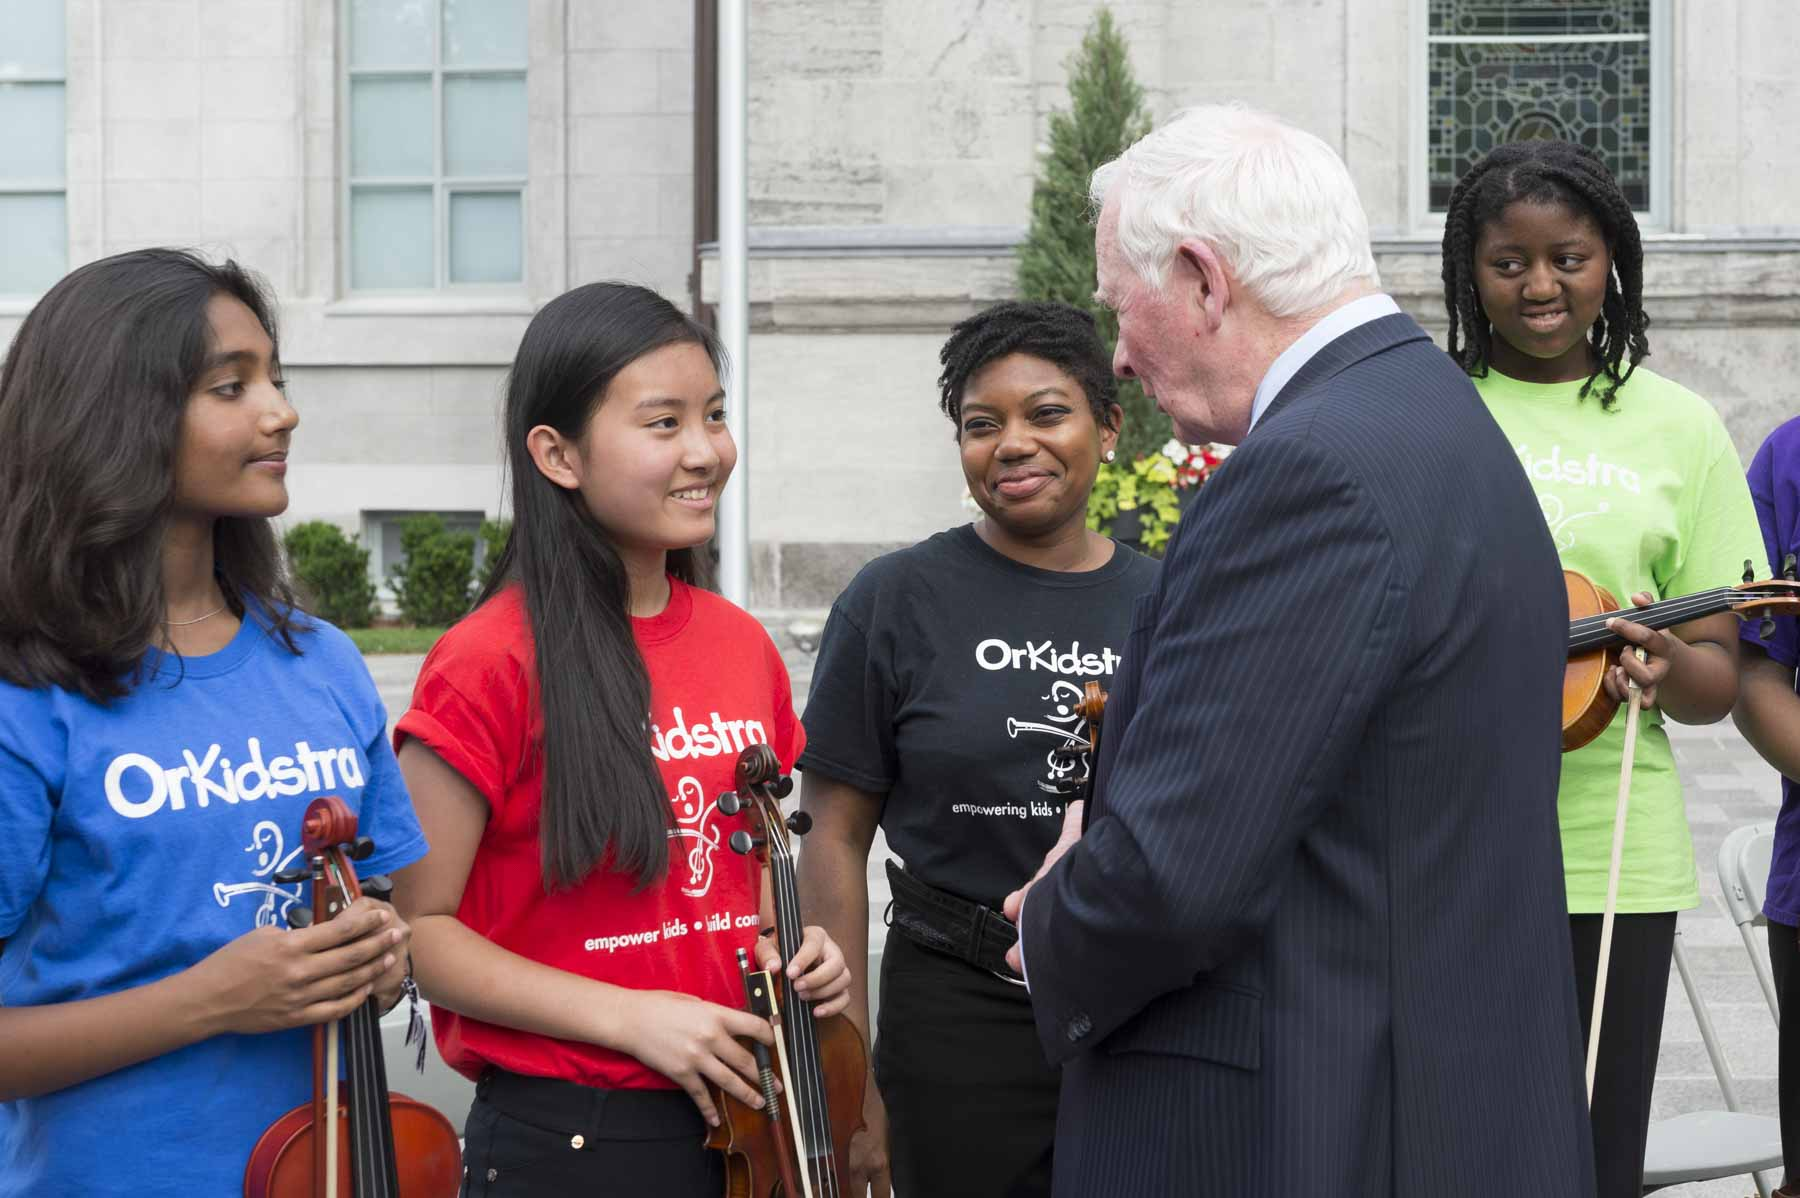 After the ceremony, the Governor General spoke with young musicians from Orkidstra.